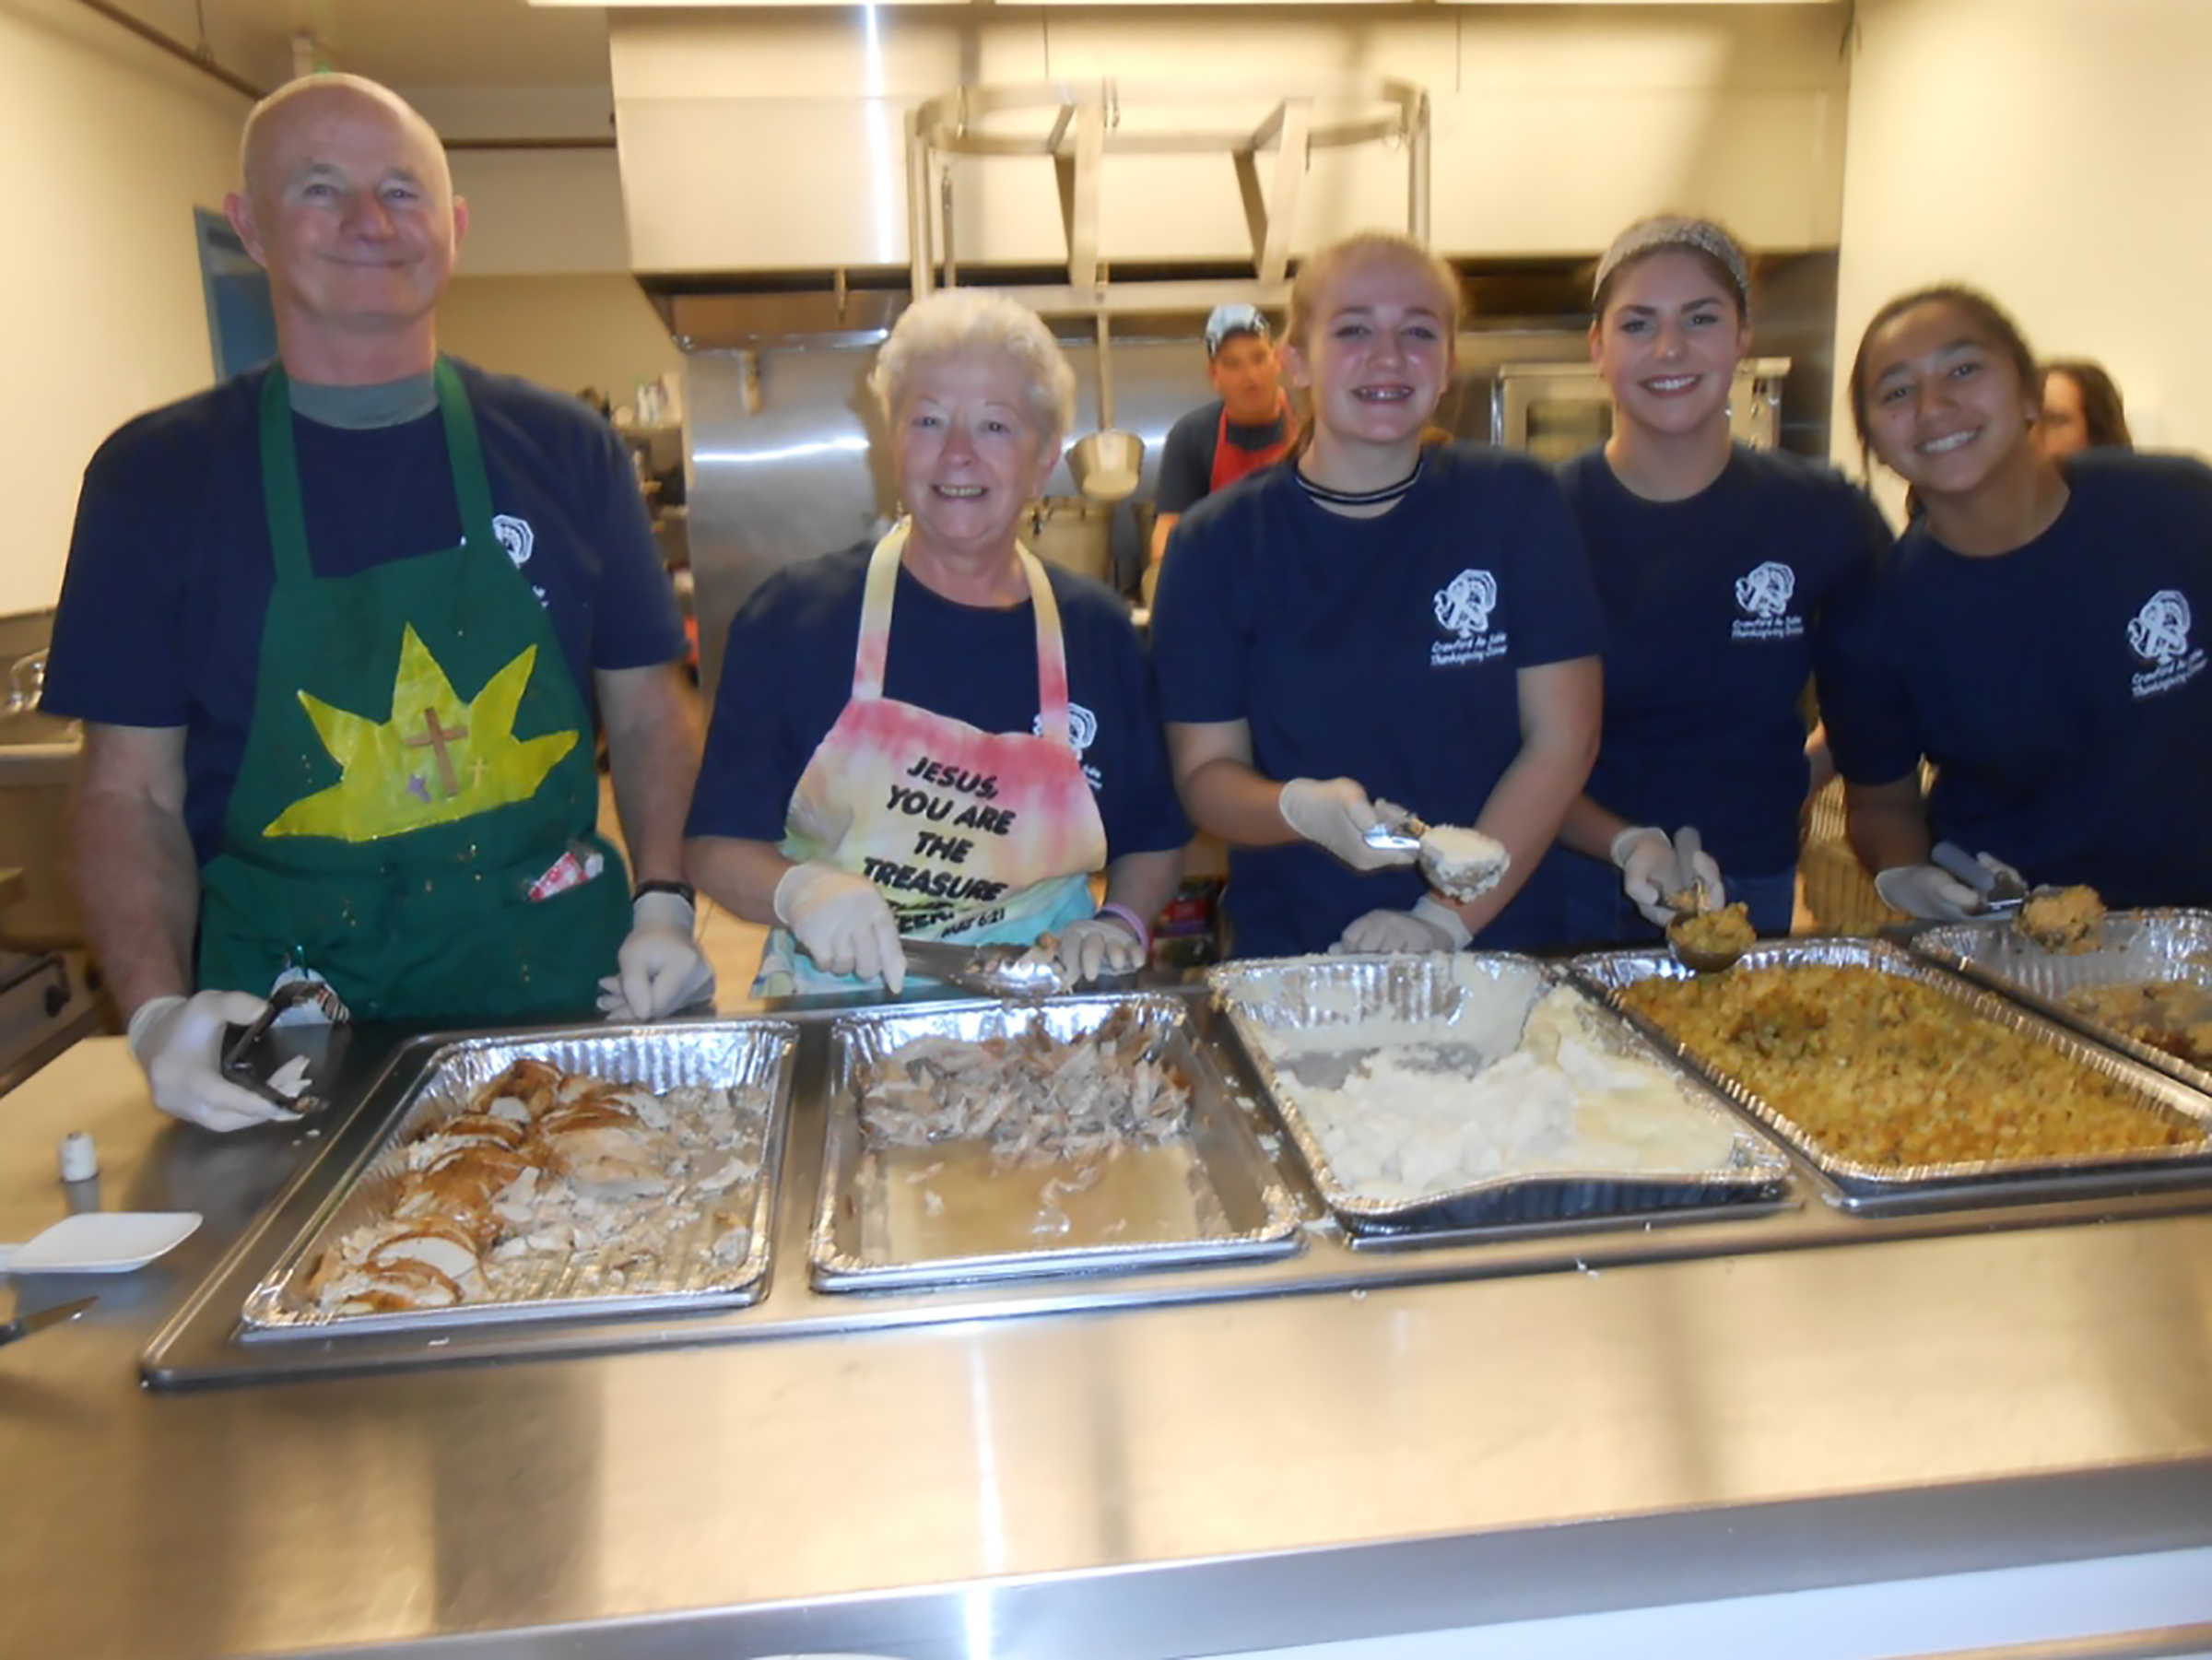 Above, this group of volunteers served up hot meal items to the area residents who were served dine-in meals at the Grayling Army Airfield.